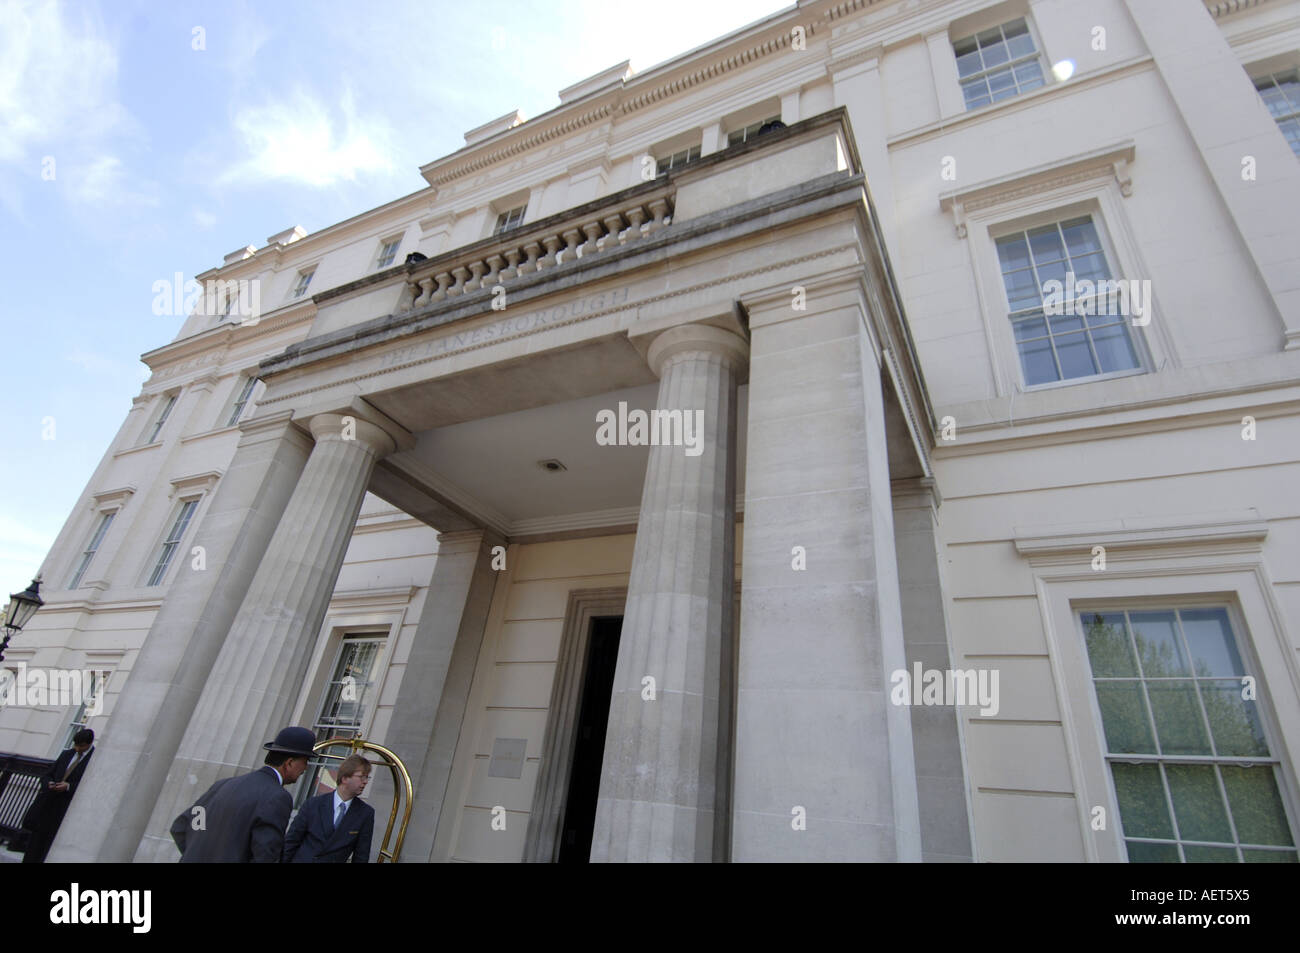 The Lanesborough Hotel, Hyde Park Corner, London UK - Stock Image